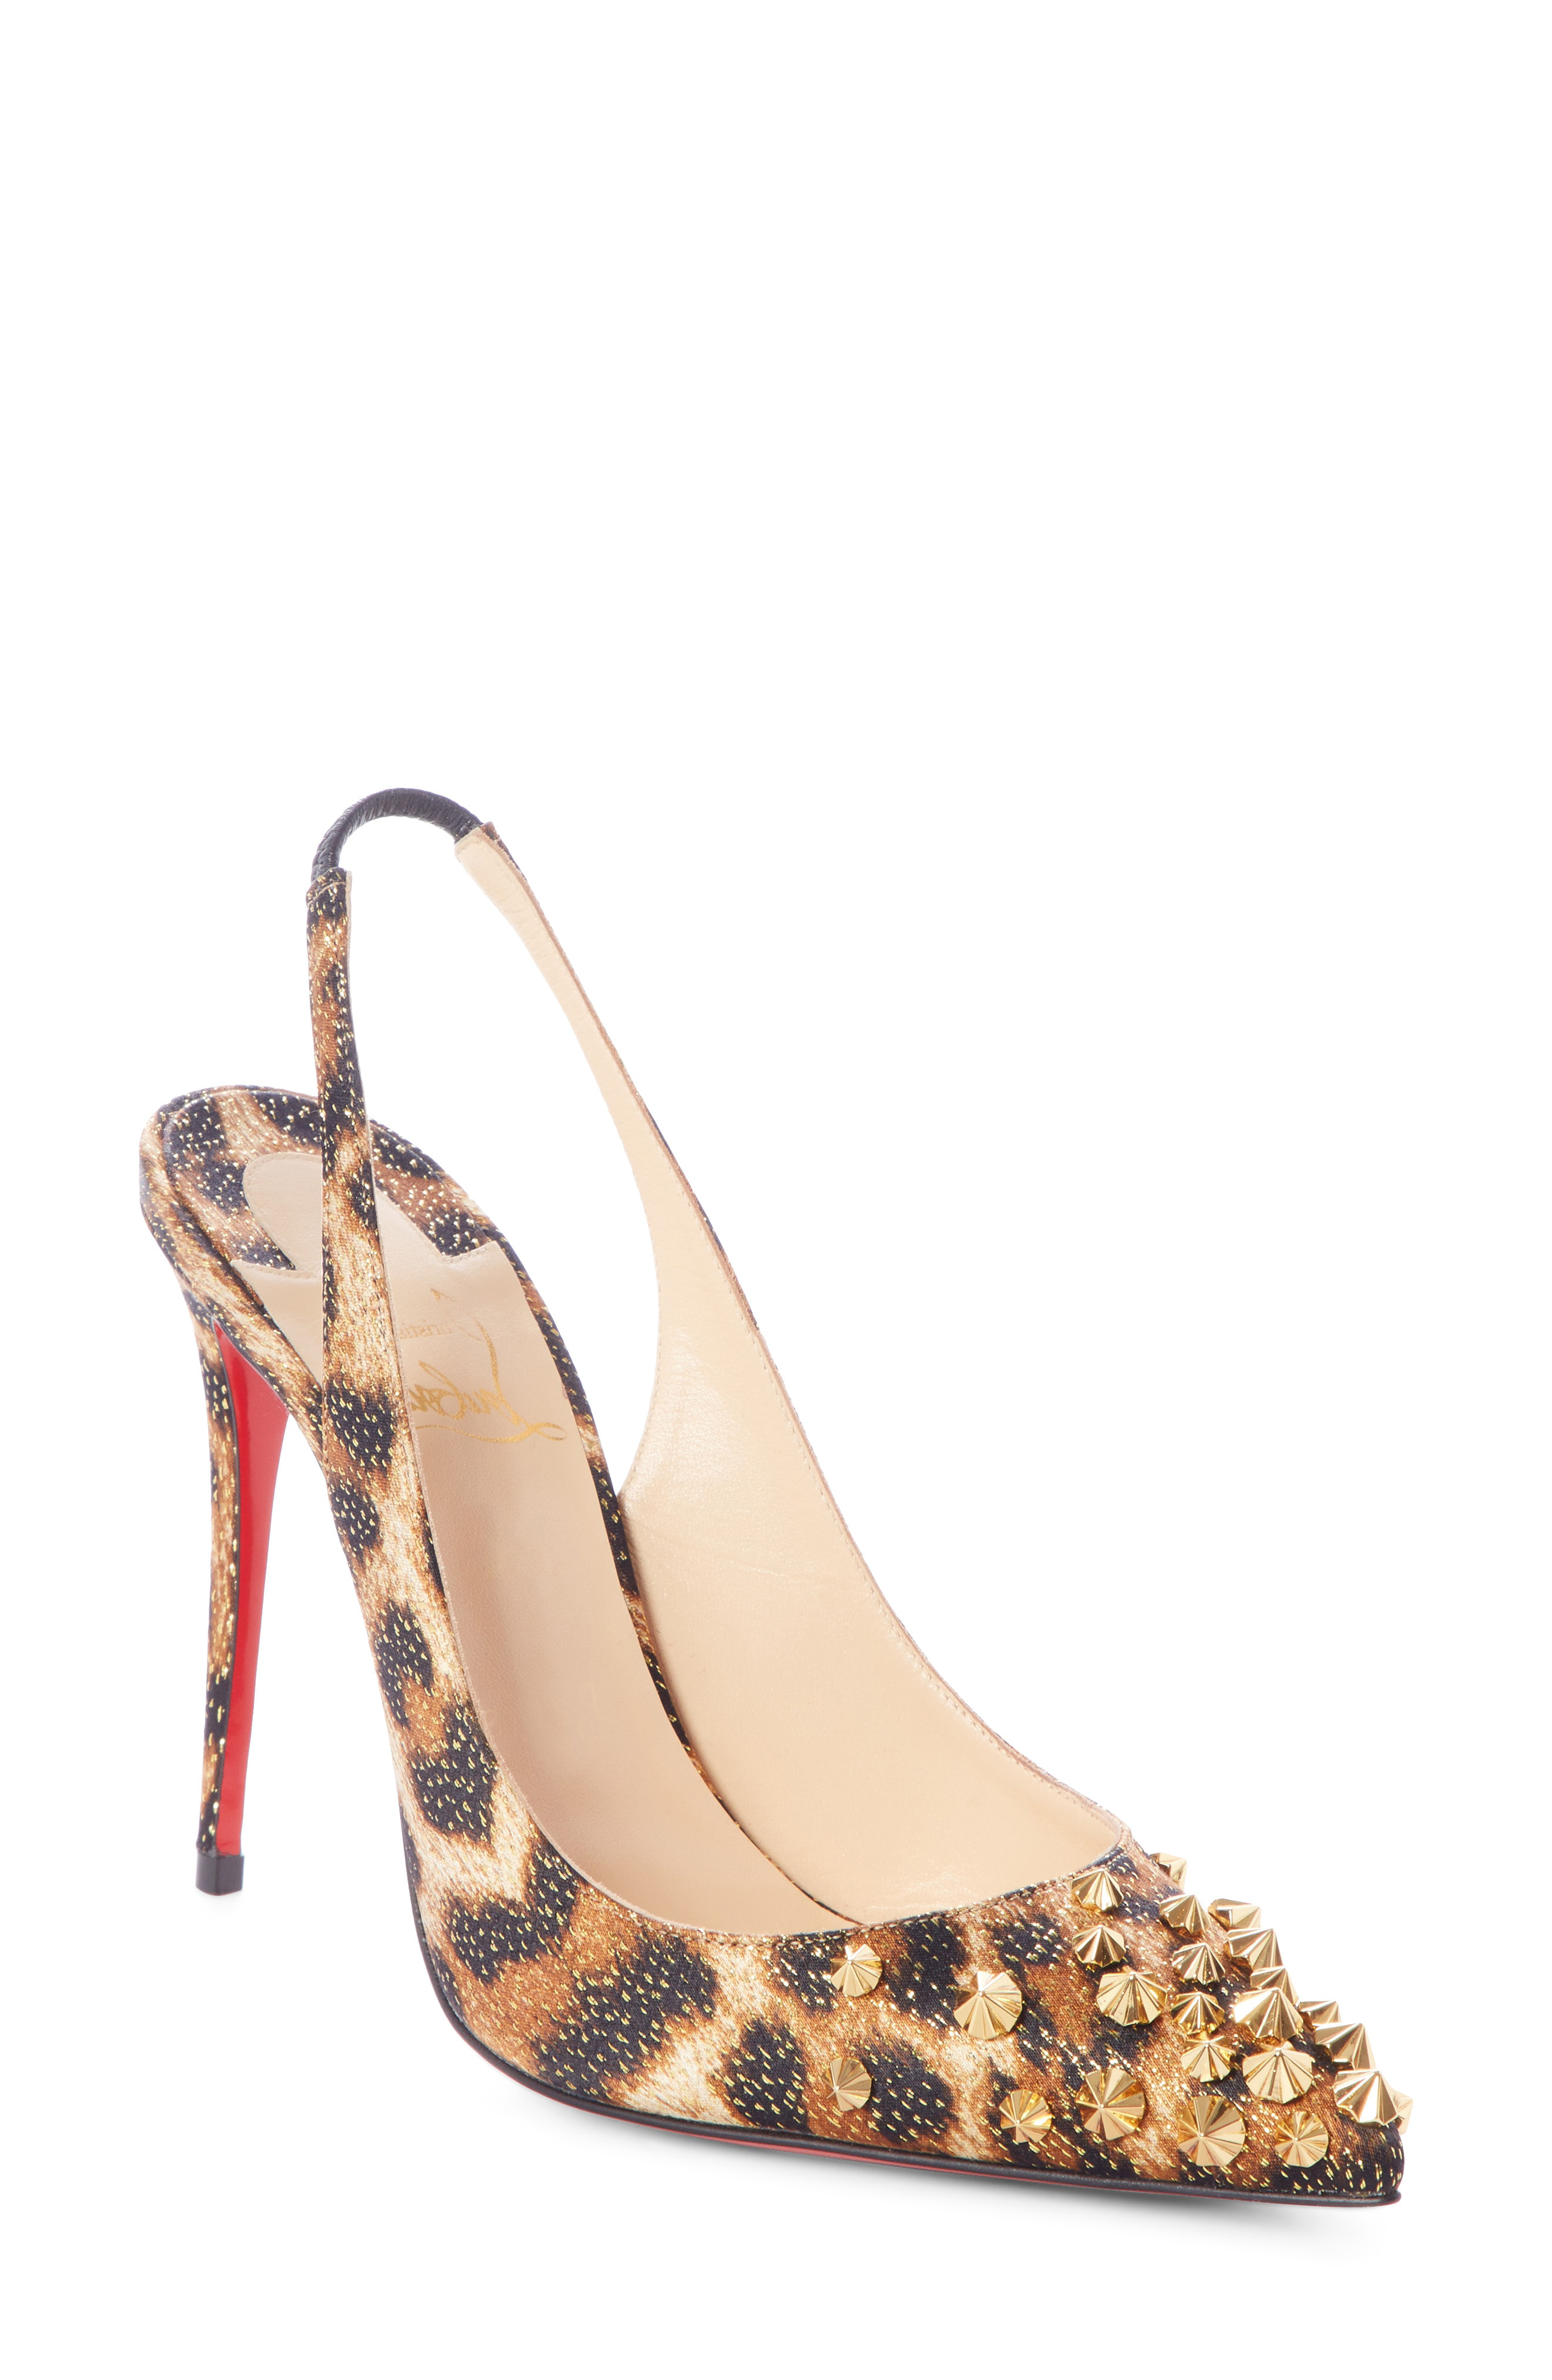 0429304fa3e1 Christian Louboutin Drama Sling 100Mm Spike Leopard Red Sole Pumps In  Black-Gold